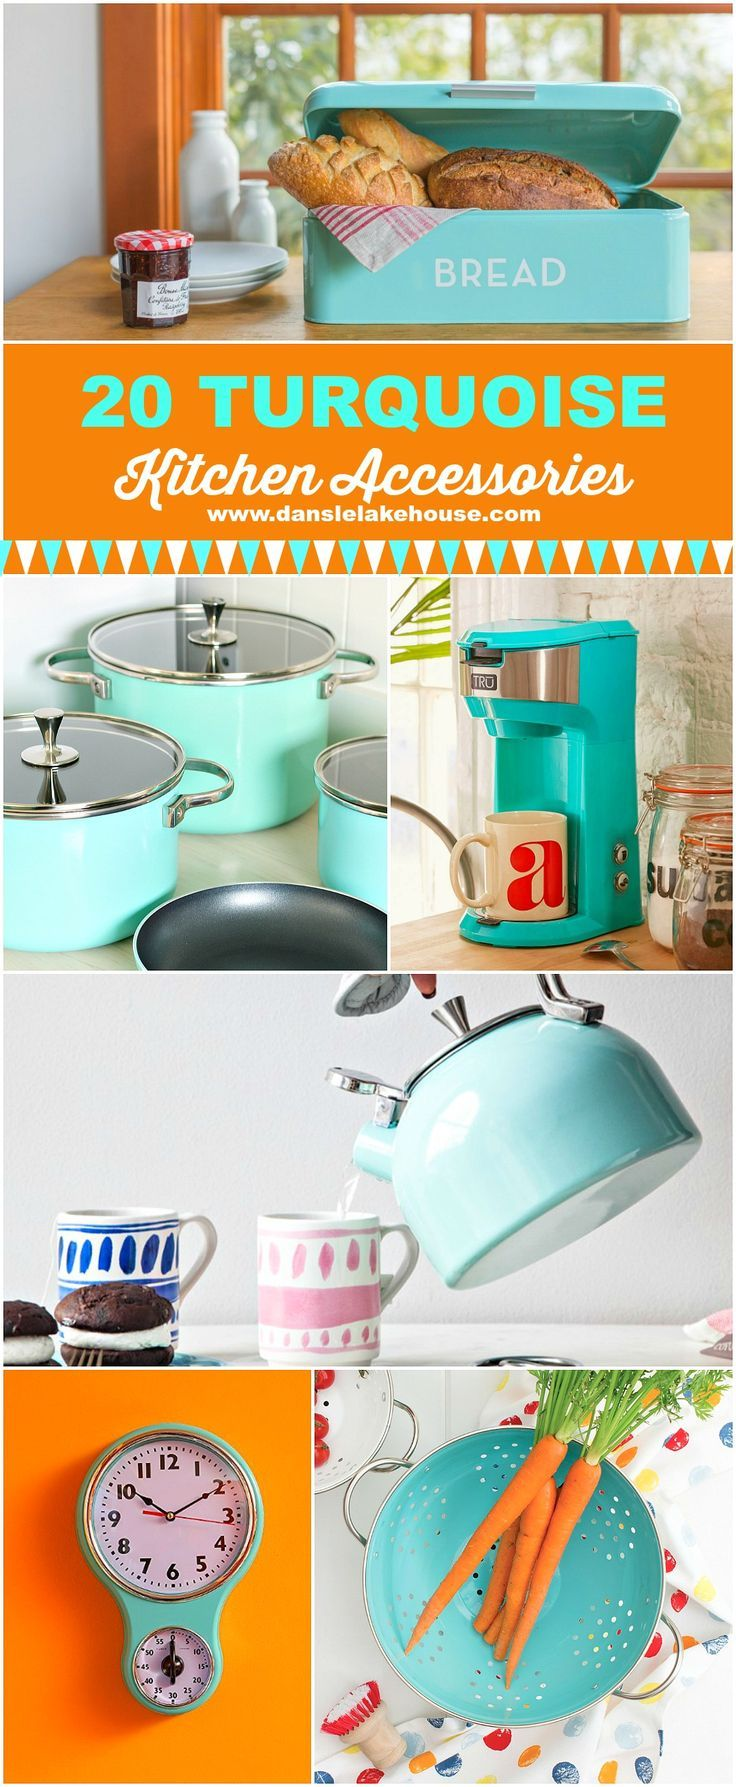 20 Gorgeous Turquoise Kitchen Accessories to Love ...